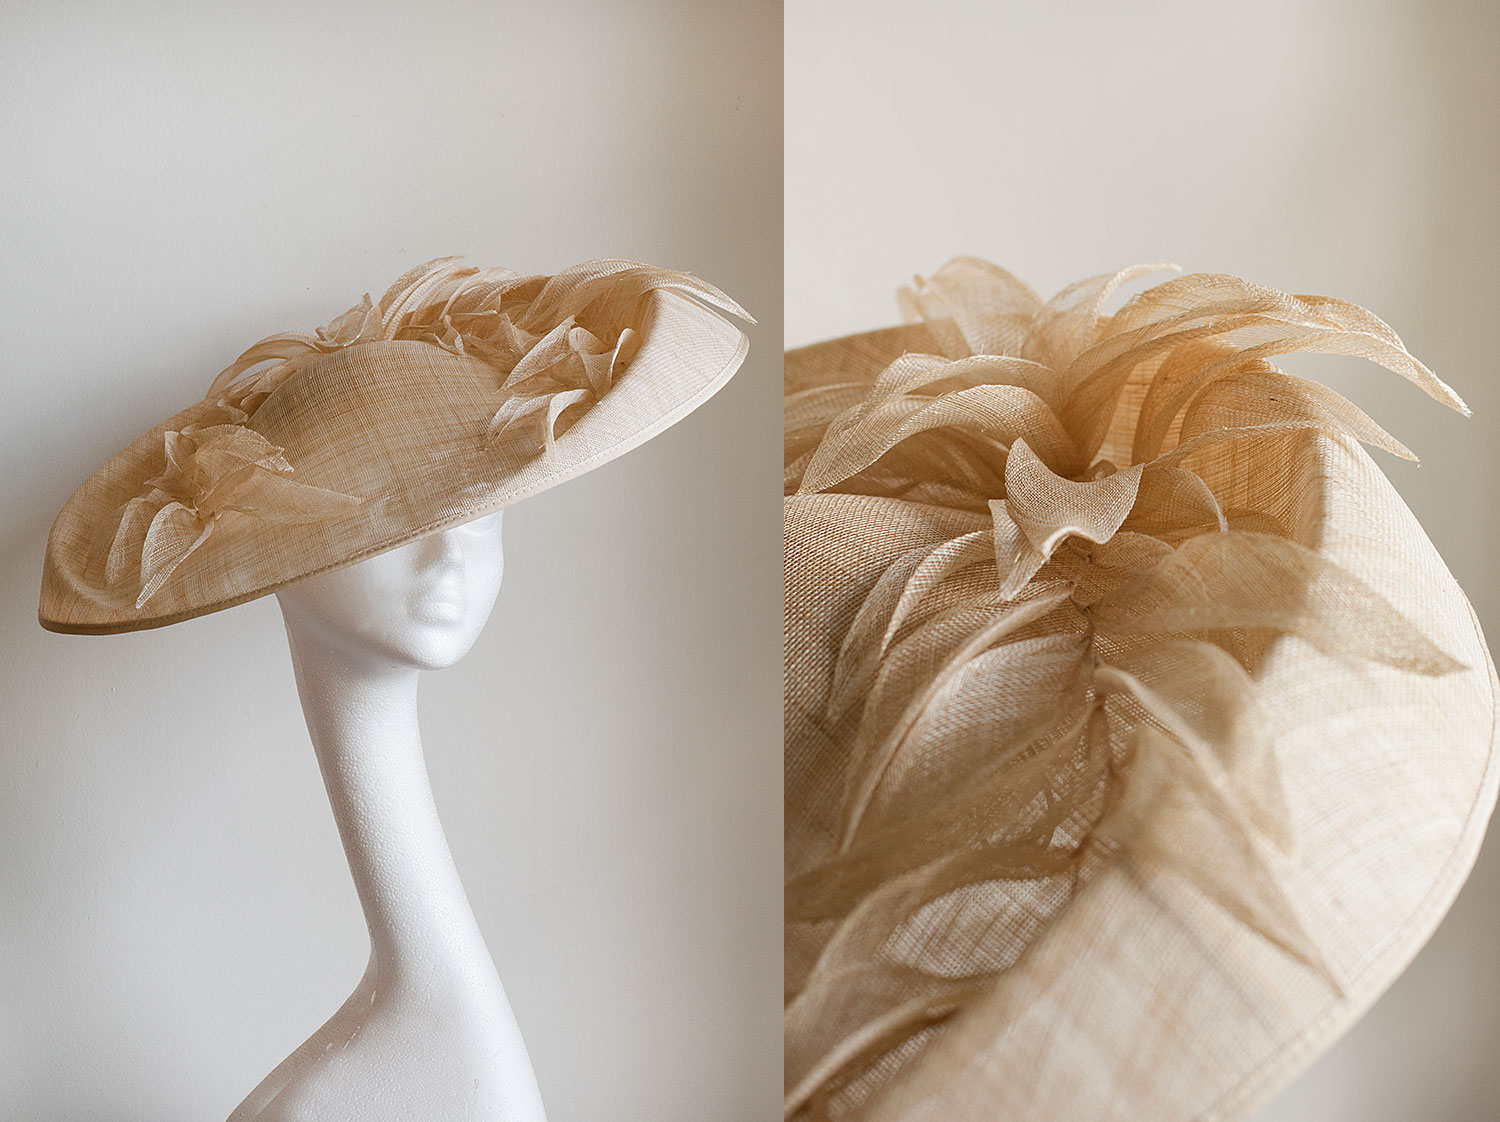 Cleopatra  - Large hat with pinok leaf detail